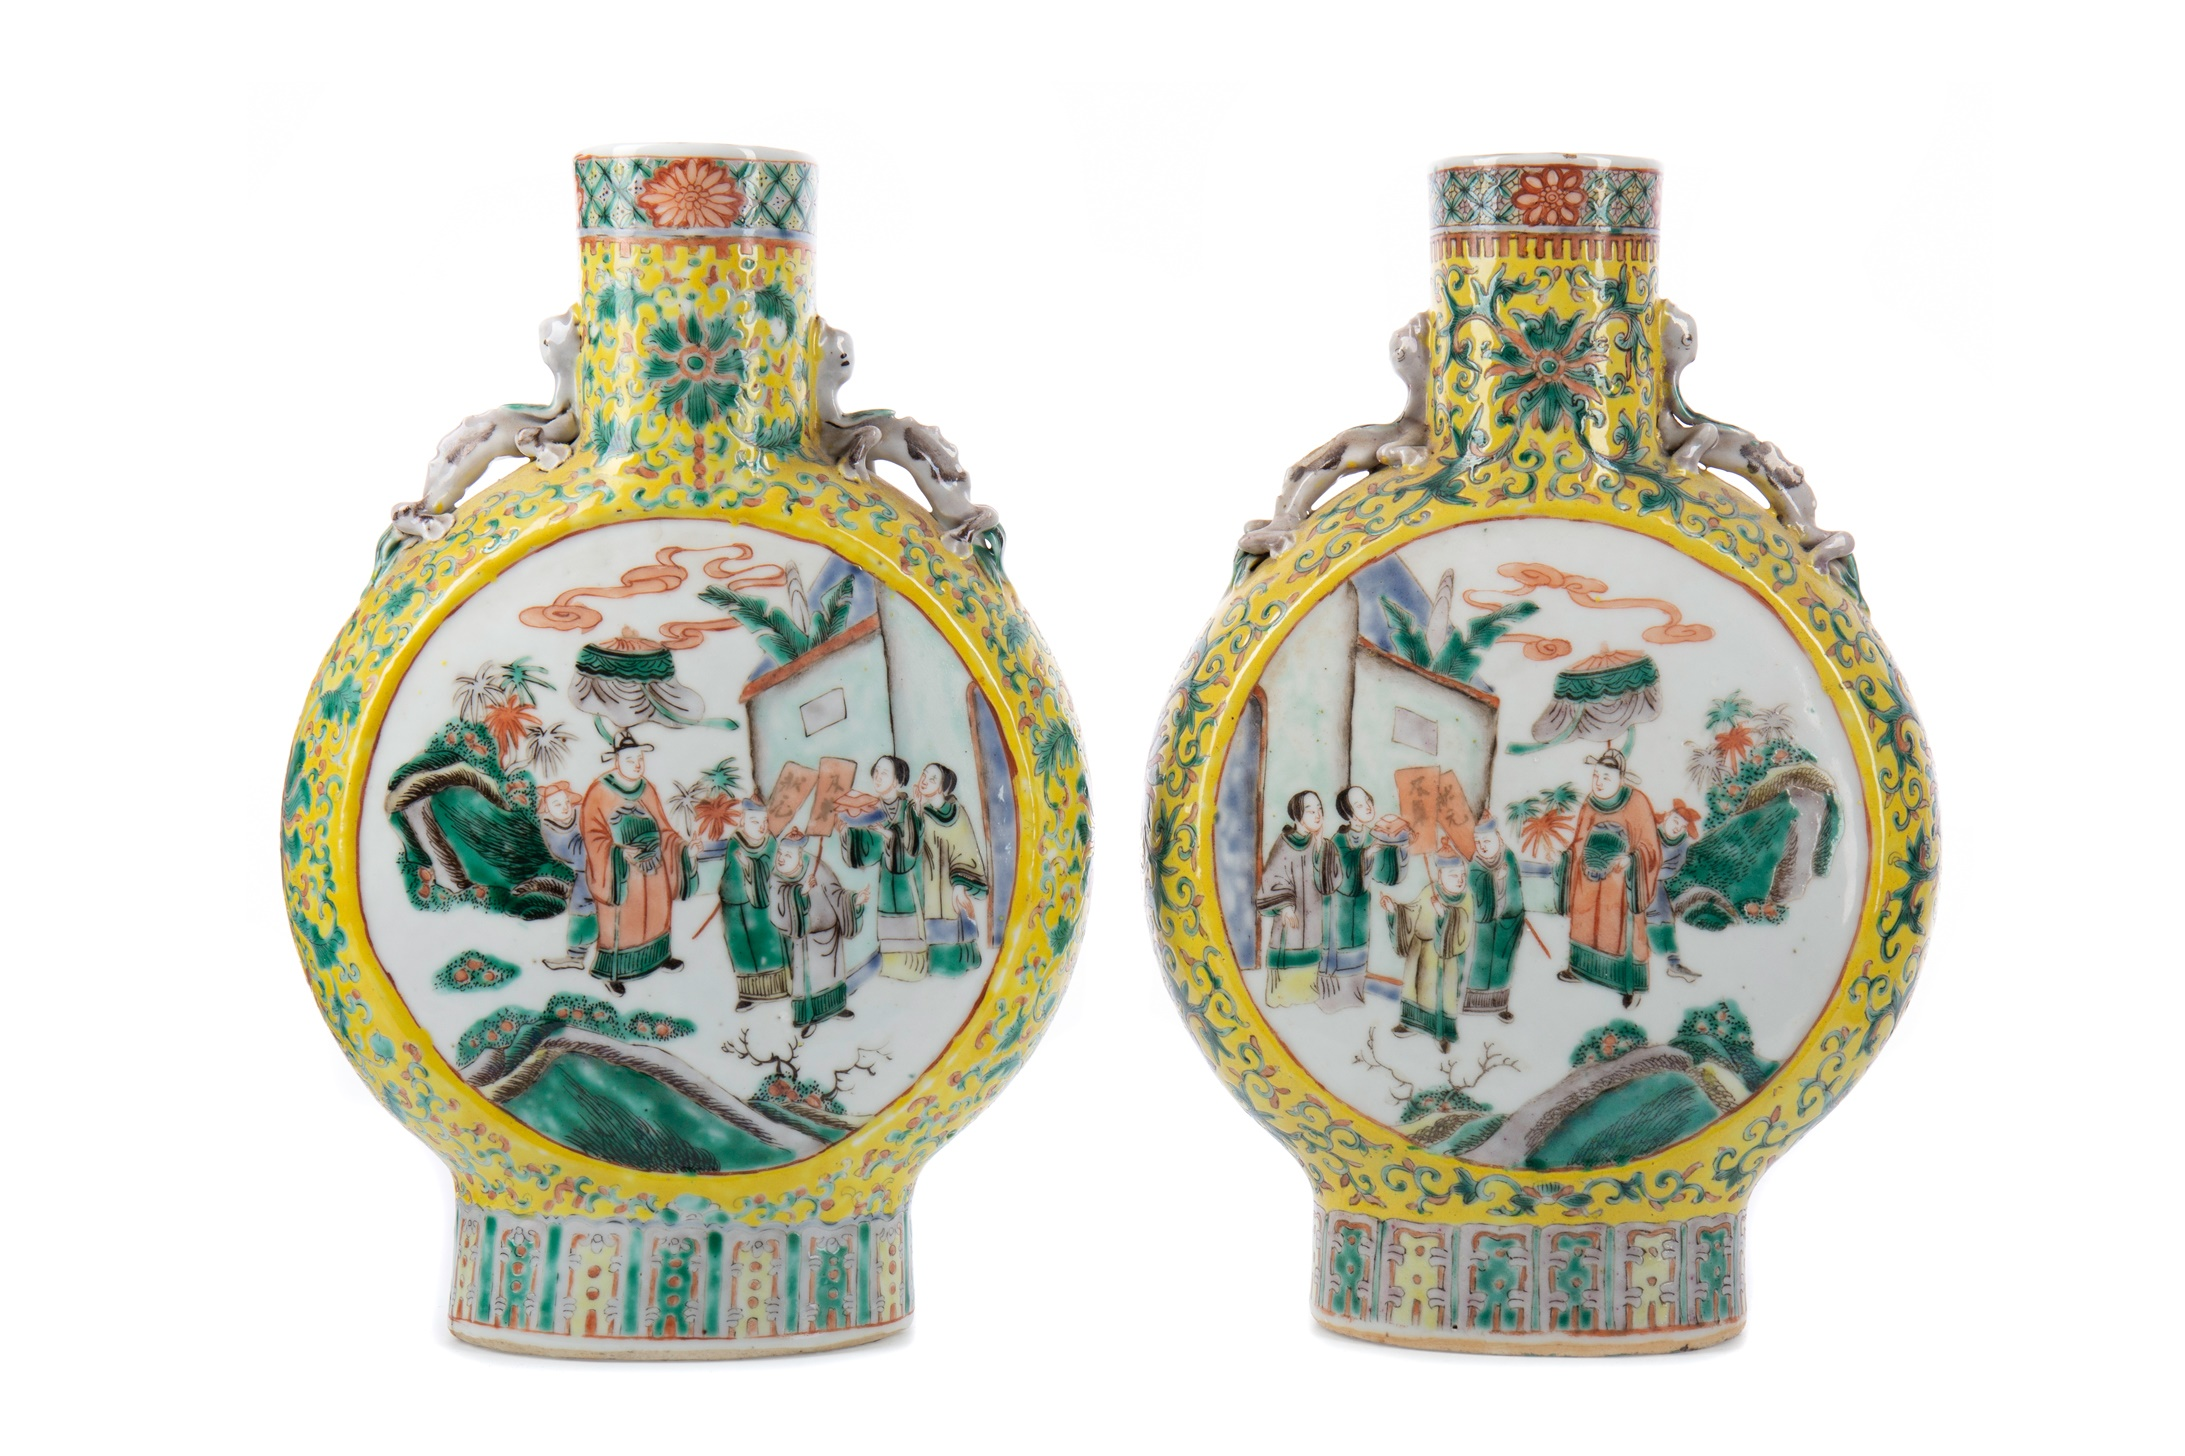 A PAIR OF 19TH CETURY CHINESE FAMILLE JAUNE MOON FLASK VASES